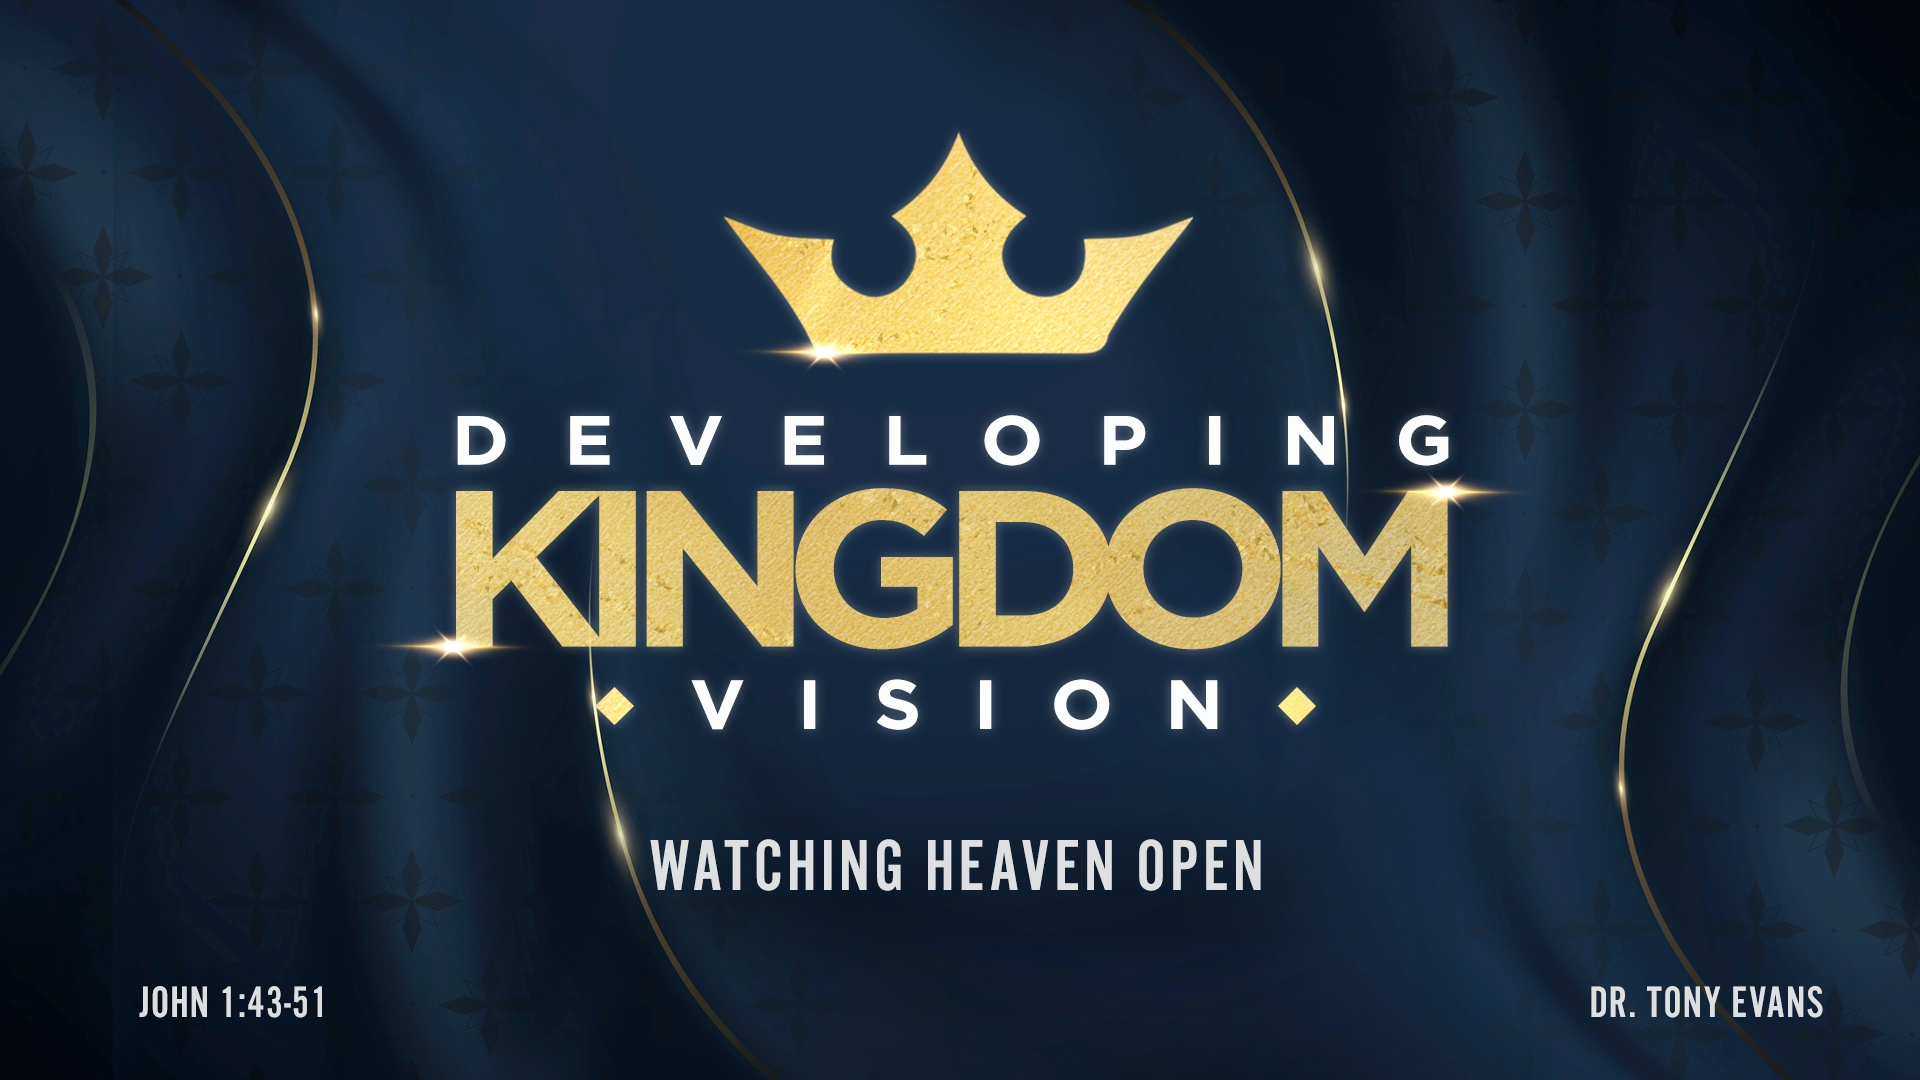 Developing Kingdom Vision Watching Heaven Open by Dr. Tony Evans